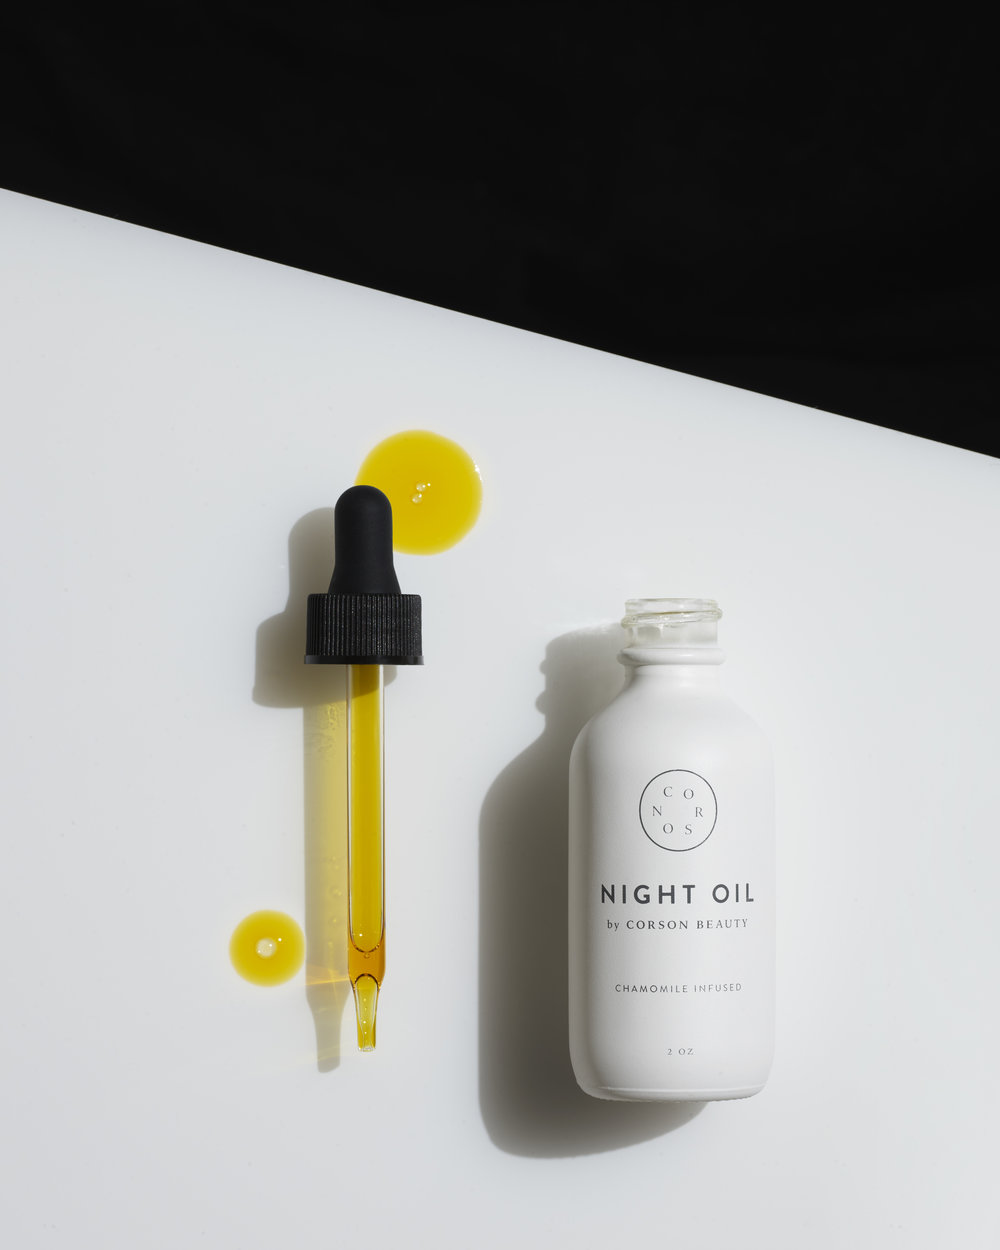 Corson BeautyNight Oil - If you were looking for a night oil that's light on the skin yet does the damn job—Corson Beauty takes the cake. And in emergencies where your skin is going erratic, the night oil truly comes to the rescue. Chalk full of botanicals like chamomile, rosehip seed oil, and squalene, you're essentially giving the skin a nightly juice cleanse. We suggest using this product at night before bed on it's own—it plays better by itself. Going overboard on the nightly creams or serums will clog your pores with a fierce intent. When applying to the skin, push and press the serum into the face rather then swiping or dragging, you'll get the most potent results out of your oil.// Corson Beauty, Night Oil, $88